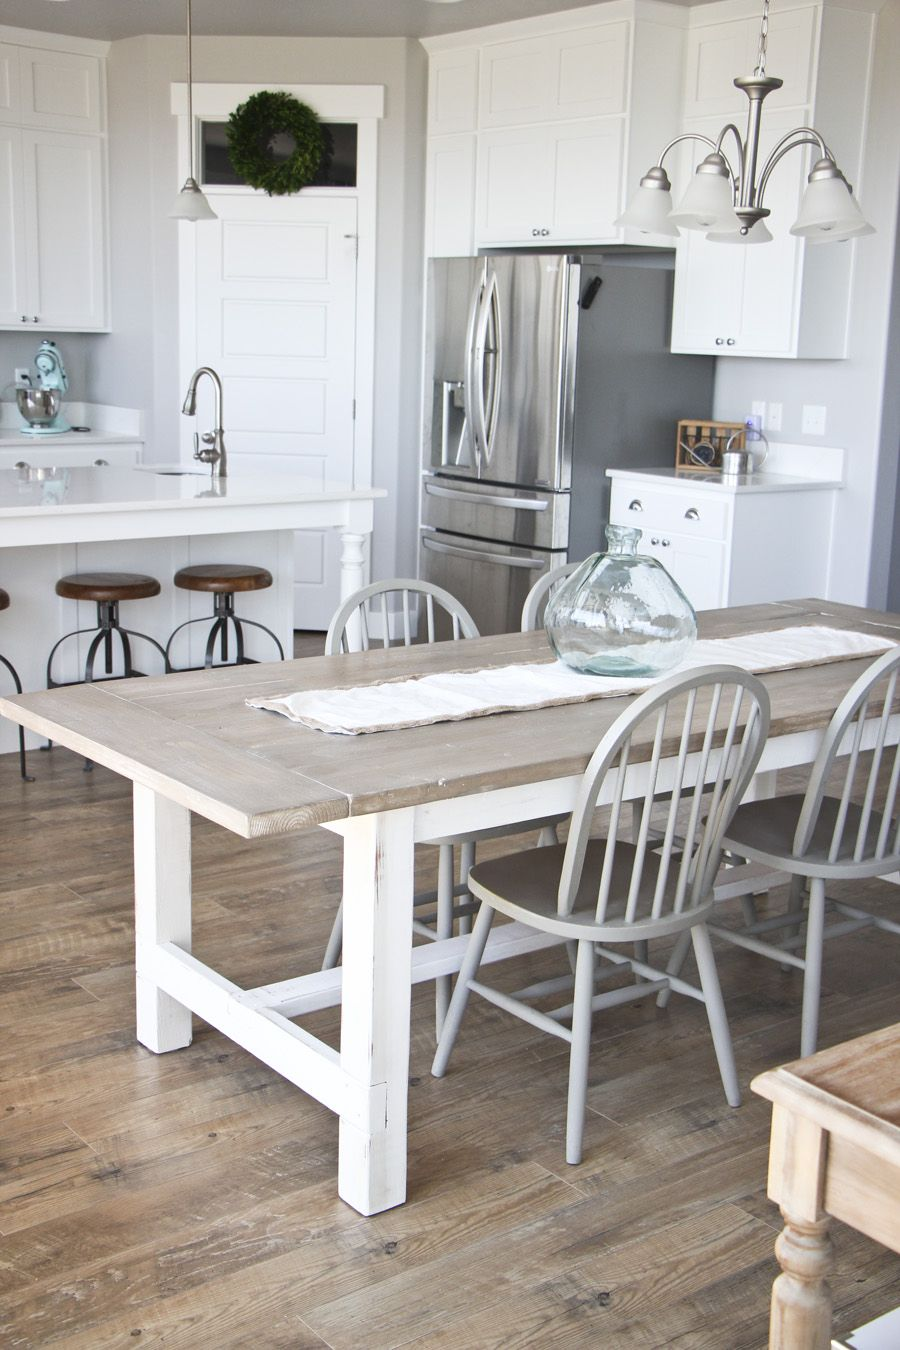 Diy Farmhouse Table And Bench  Farmhouse Table Weather And Varnishes Gorgeous Farm Style Dining Room Table 2018